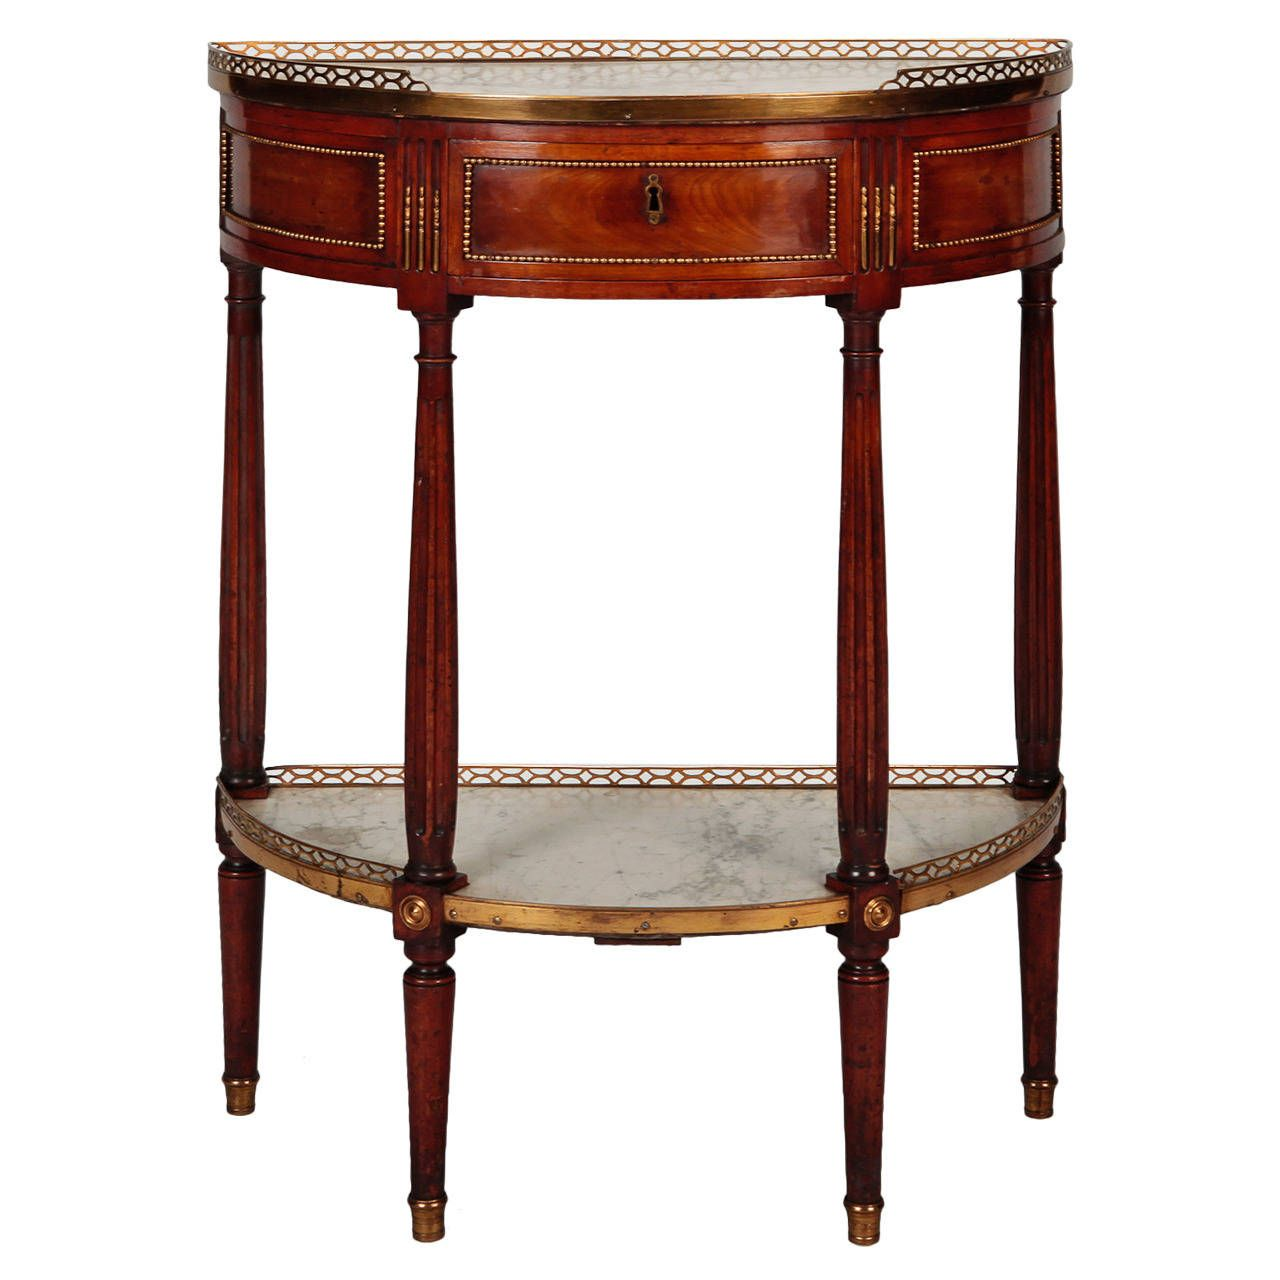 Louis Xvi Style Demilune Serving Table With Drawer And White Marble 1